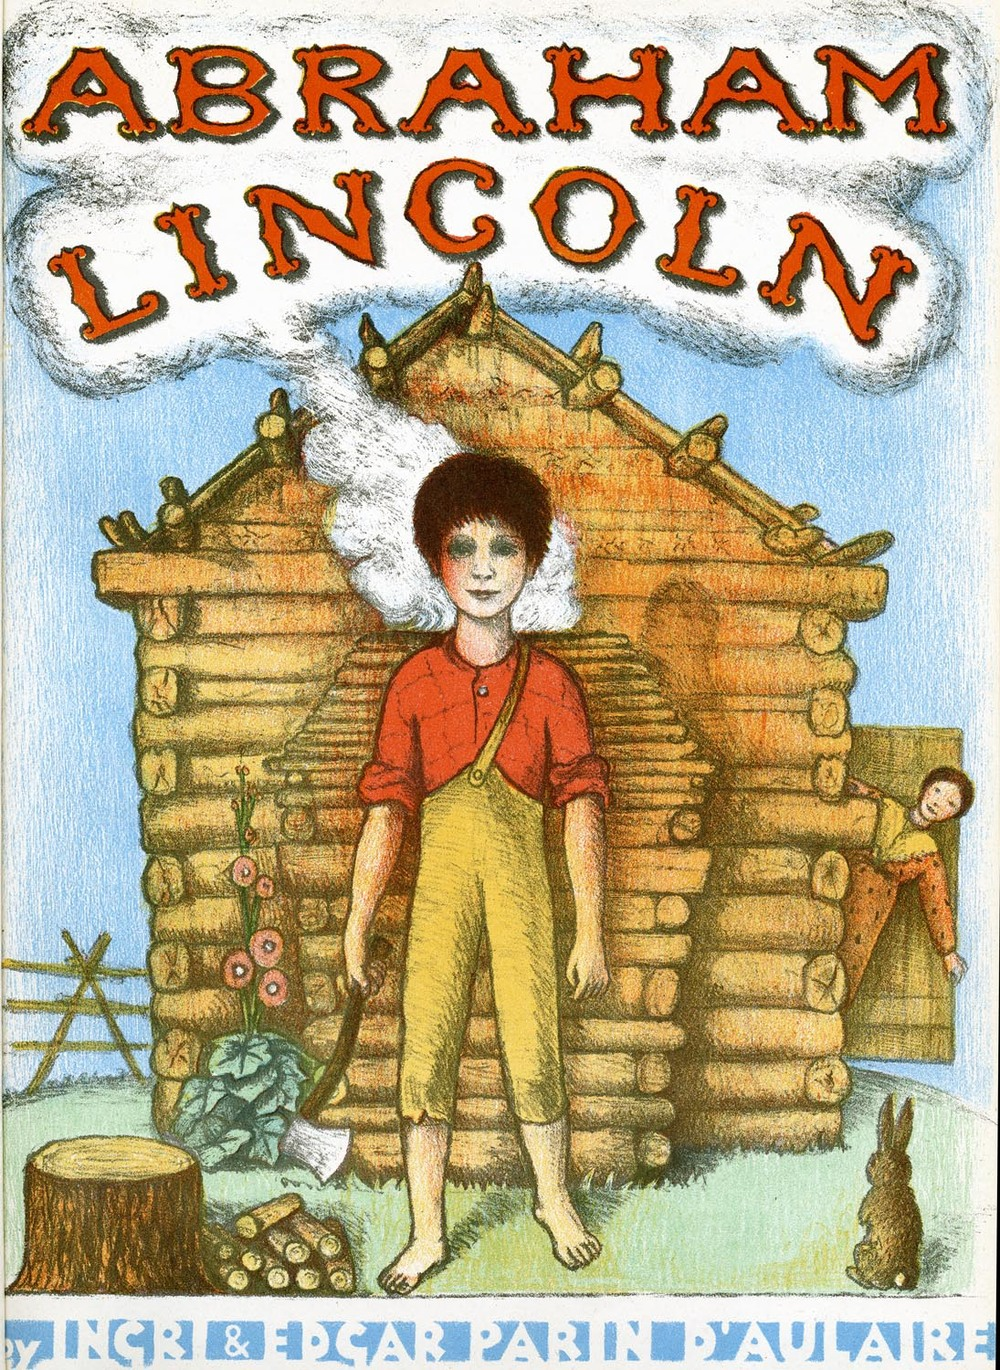 Abraham Lincoln   by Ingri & Edgar Parin d'Aulaire. Early reprint.